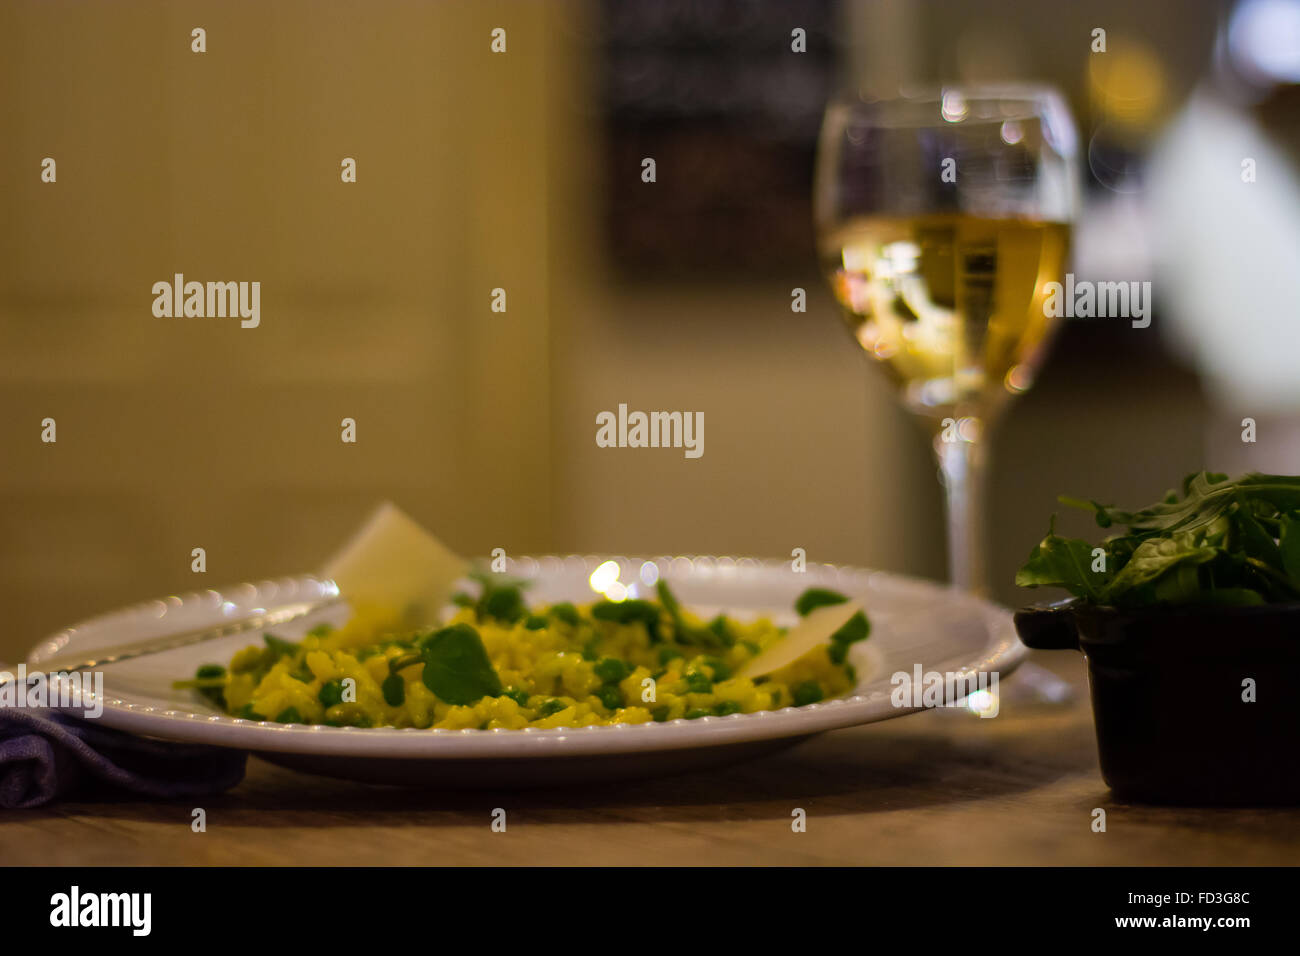 Leek, garden pea and saffron risotto plate with wine. French restaurant prepared cuisine with bright yellow rice - Stock Image